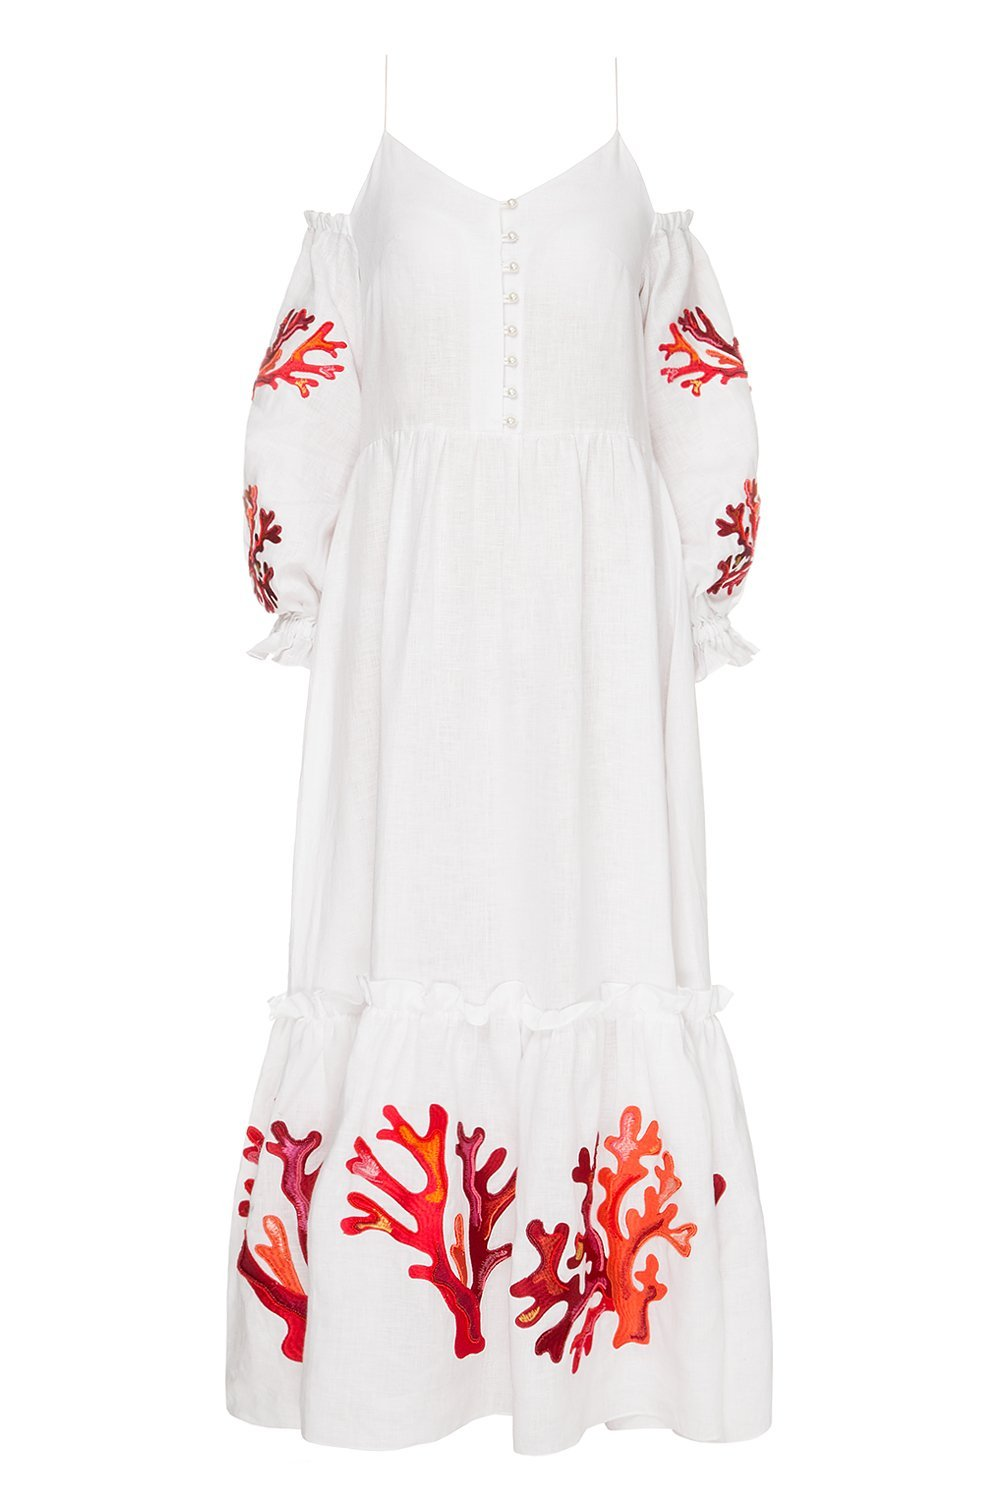 Saint-Tropez White Dress with Beads